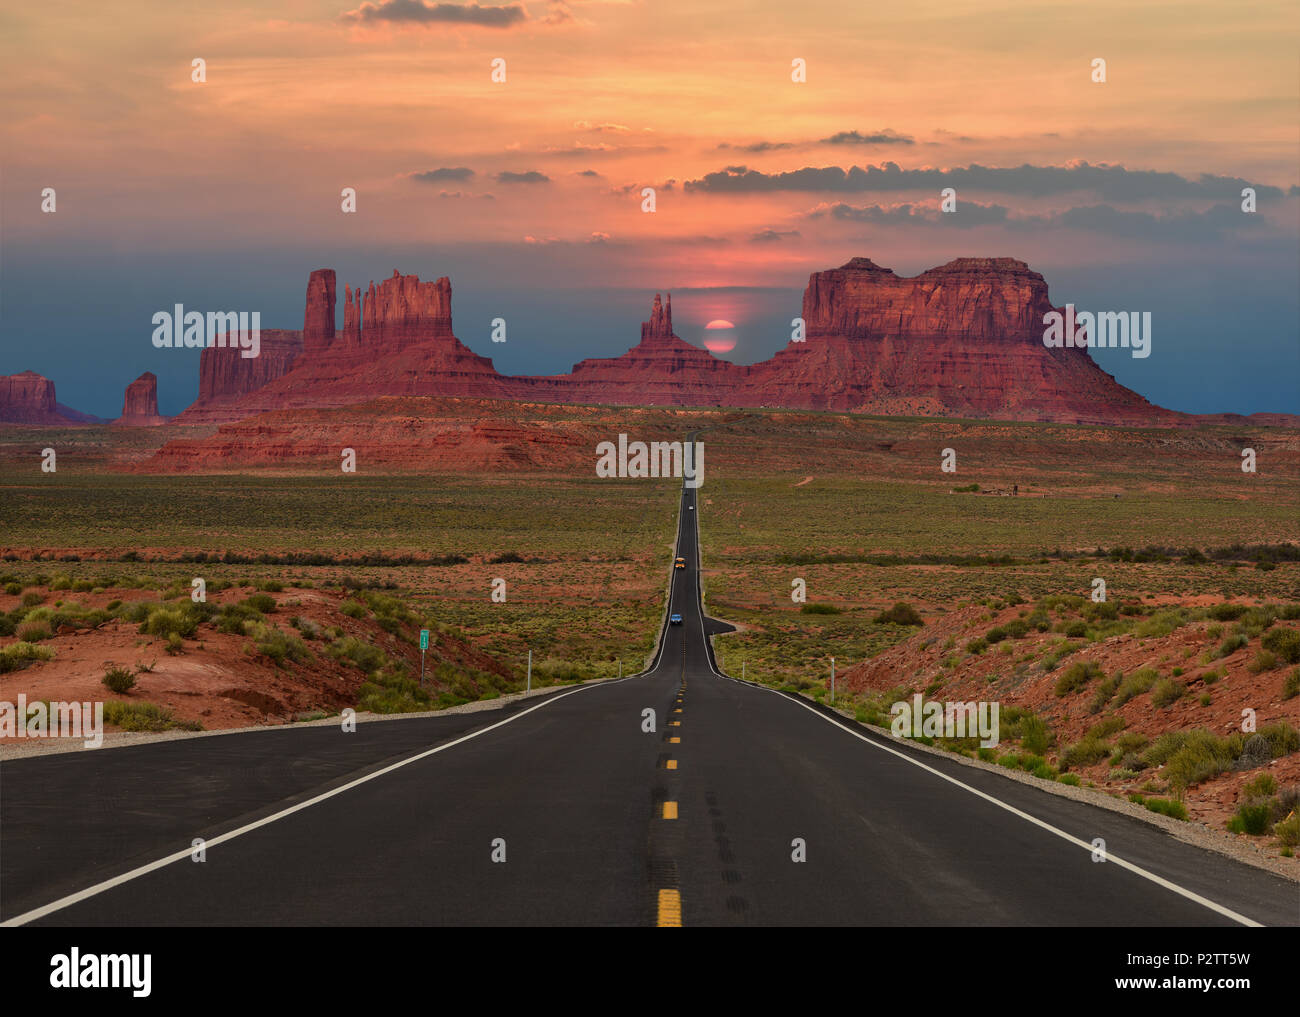 Scenic Highway In Monument Valley Tribal Park In Arizona Utah Border U S A At Sunset Stock Photo Alamy